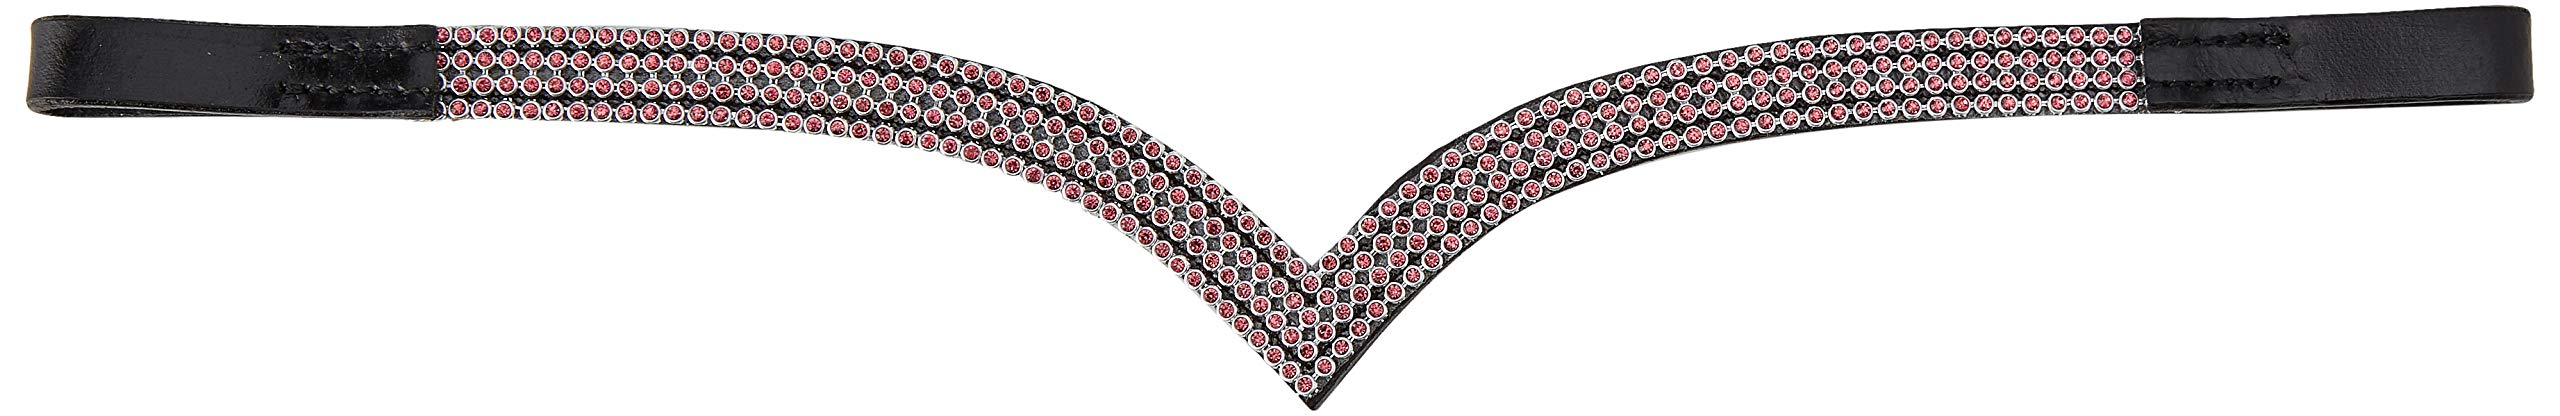 Cwell Equine V Pink Crystal Browband Choice of Sizes - F/C/P (Black) (COB 15'')